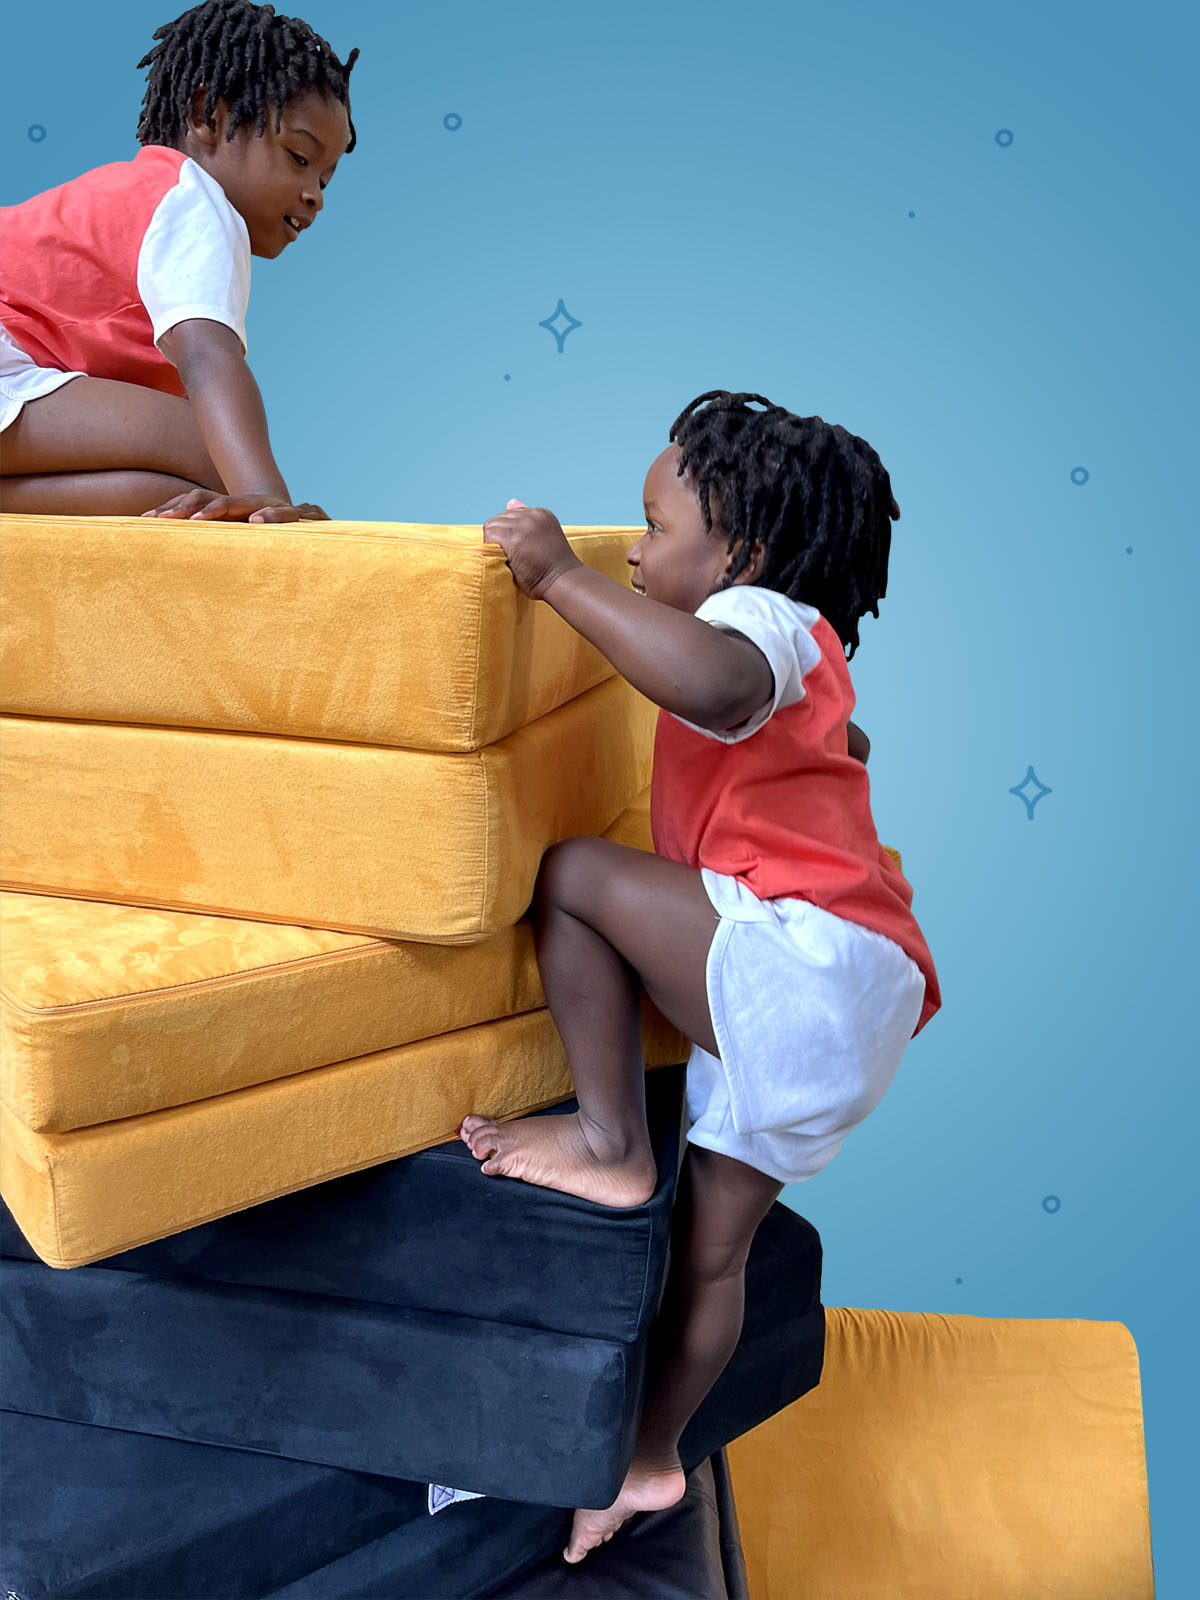 One child perched on top of a stack of cushions, looking down at other child who is climbing up the stack like a rock climber